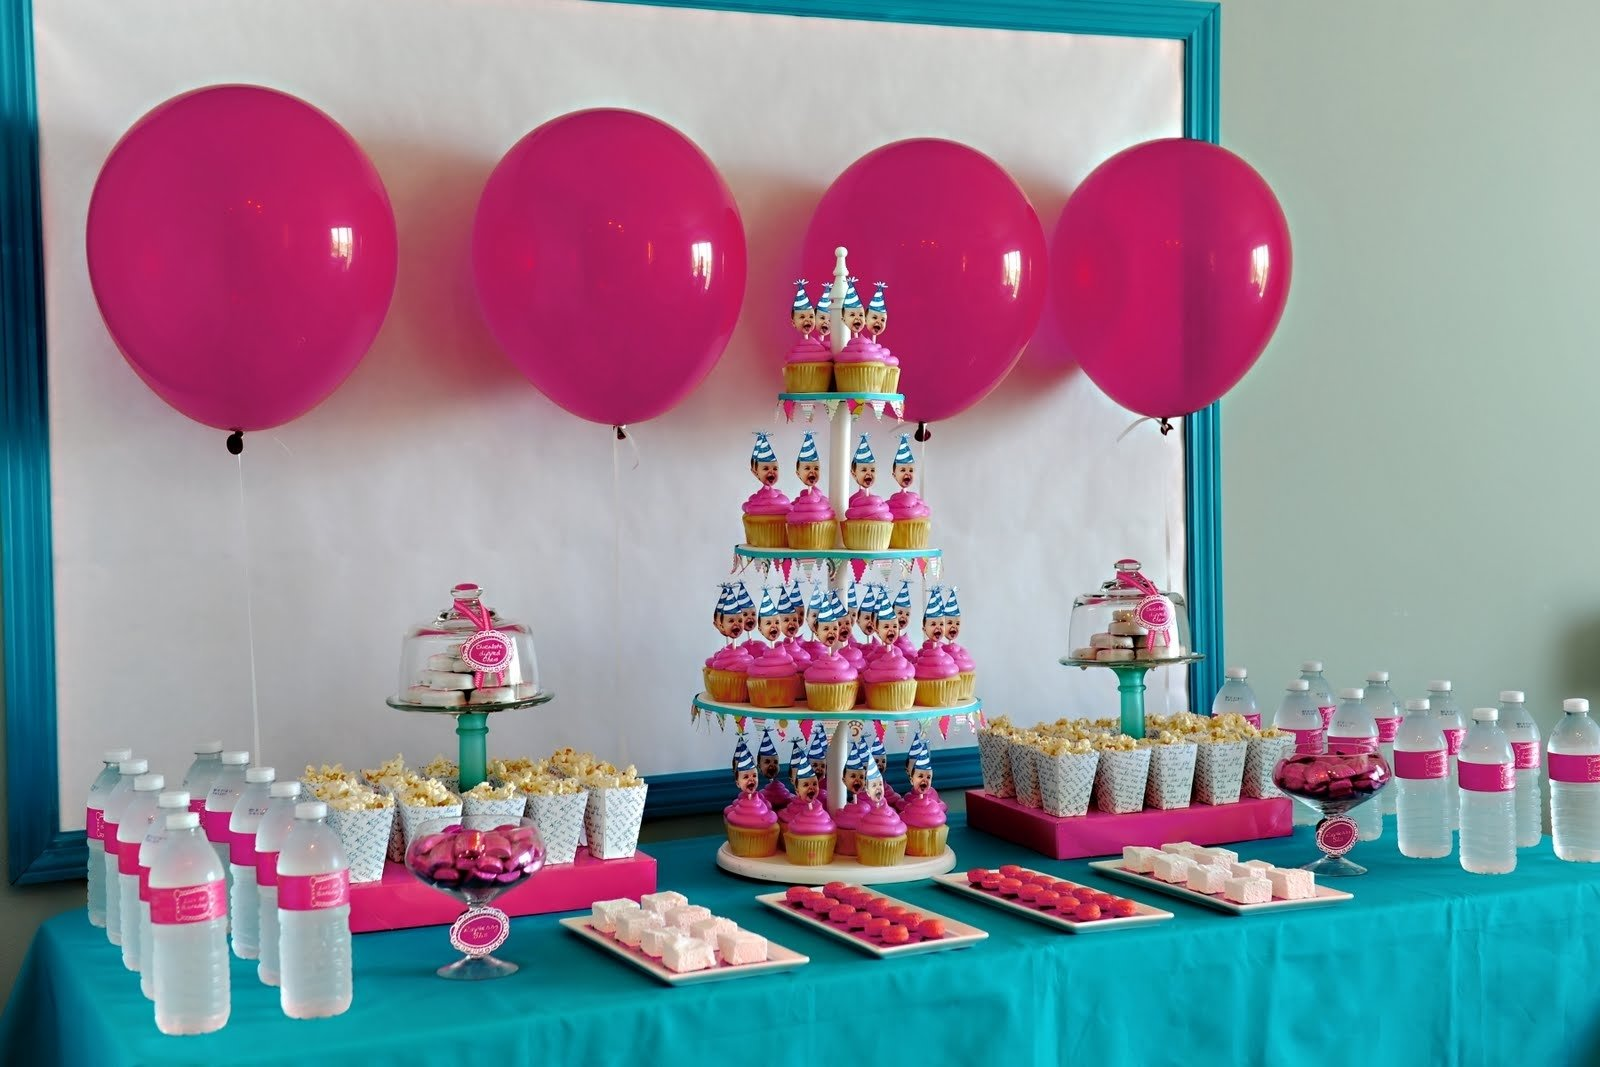 10 Most Popular 10 Year Old Girl Party Ideas themes birthday 6 year old boy birthday party ideas at home in best 18 2021